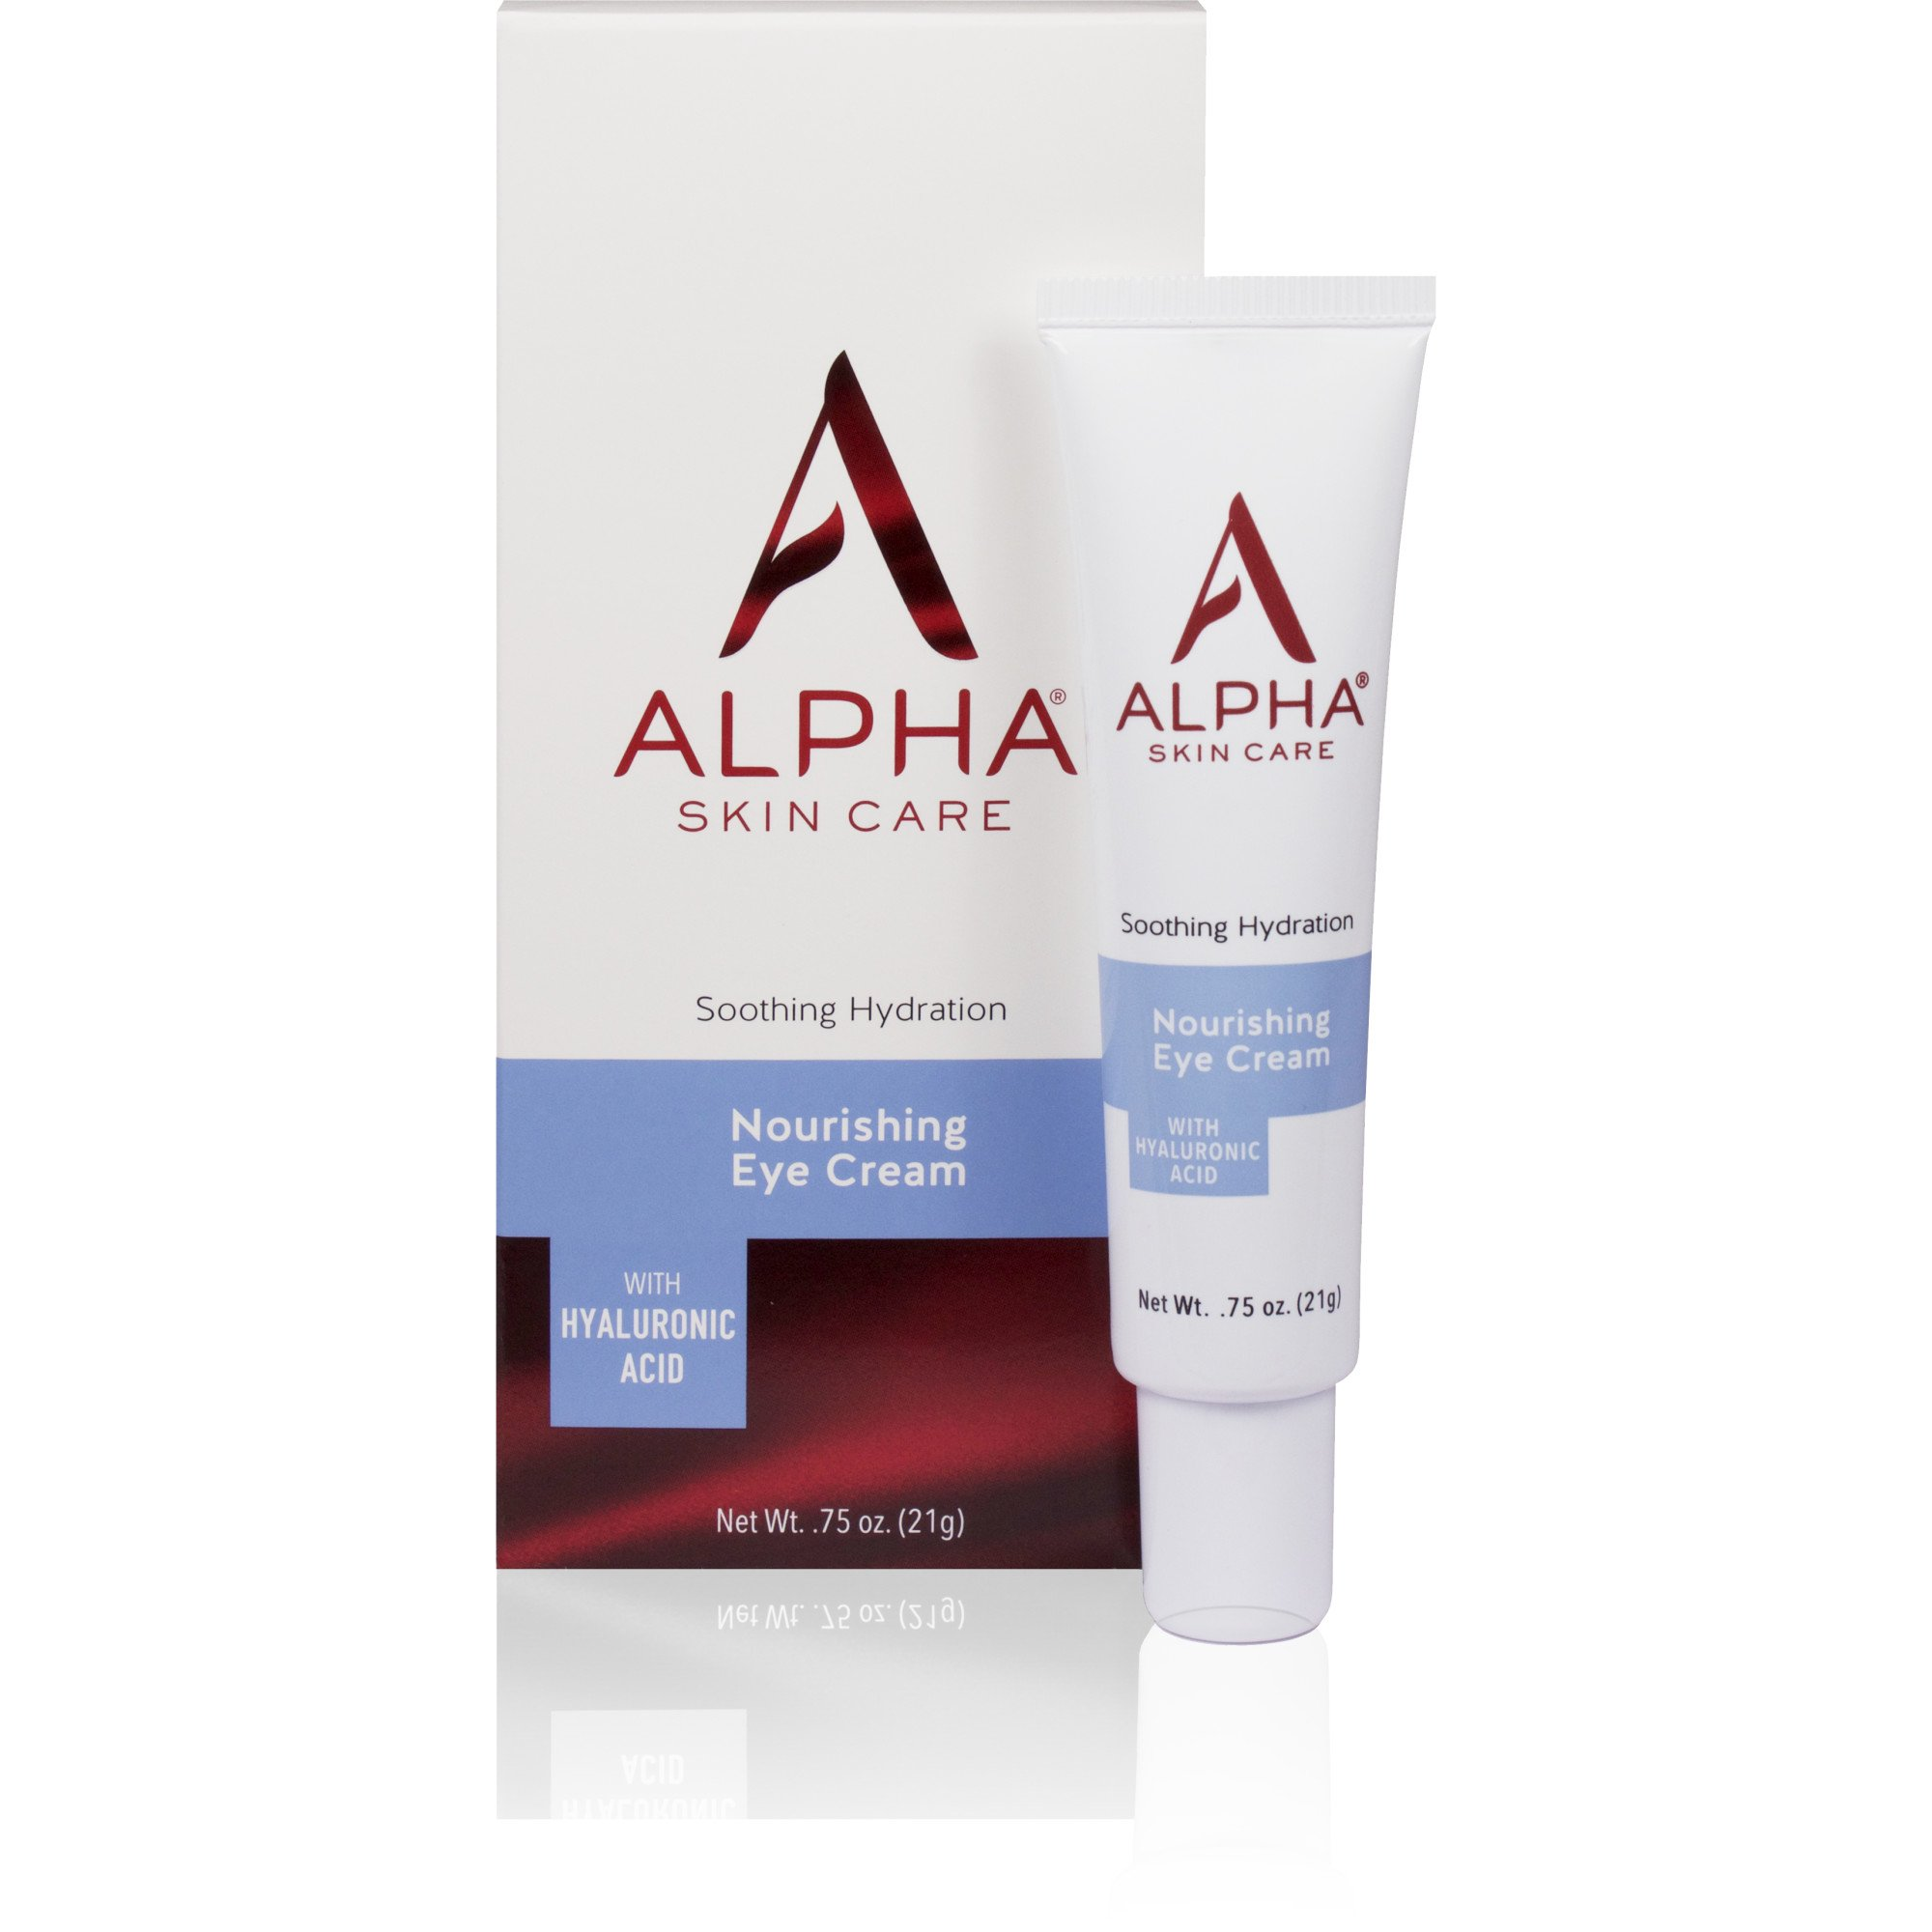 Alpha Skin Care - Nourishing Eye Cream, with Hyaluronic Acid, Soothing Hydration for Radiant Skin| Fragrance-Free and Paraben-Free| 0.75 Ounce (Packaging May Vary) by Alpha Skin Care